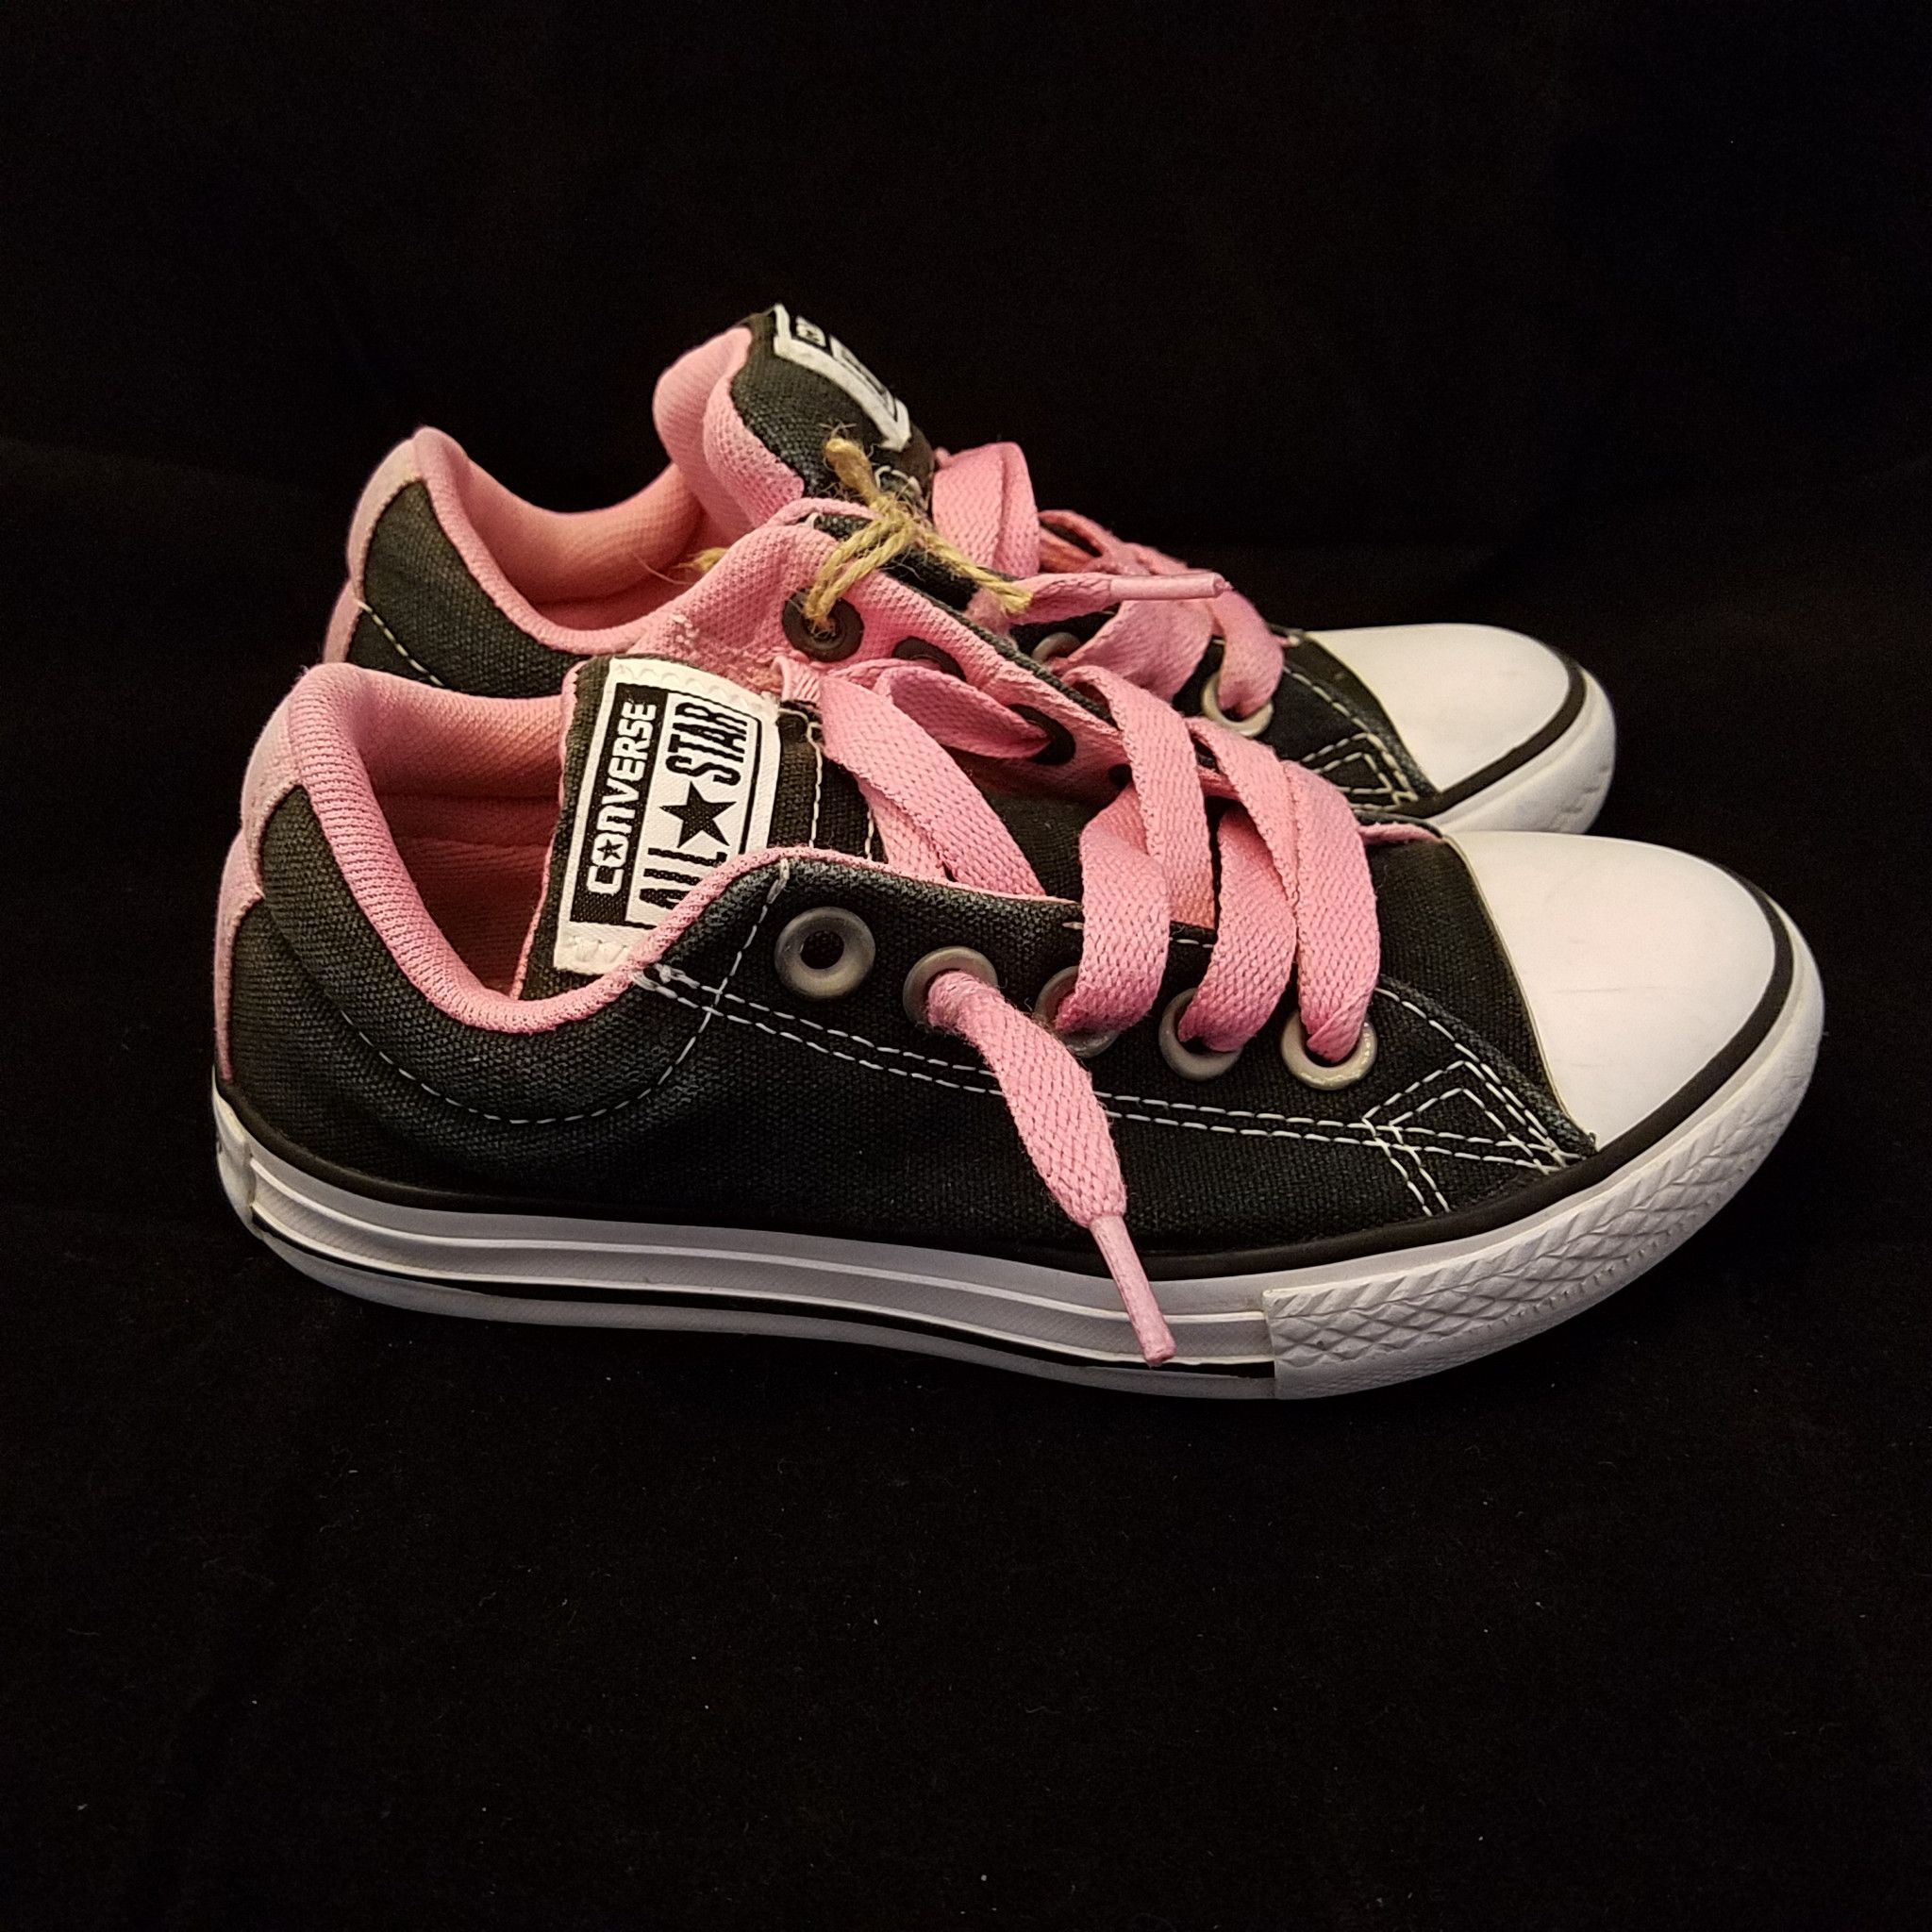 1d374c48897b CONVERSE ALL STAR BLACK PINK PADDED TONGUE LOW TOP SIZE 12 CHUCK TAYLORS  YOUTH